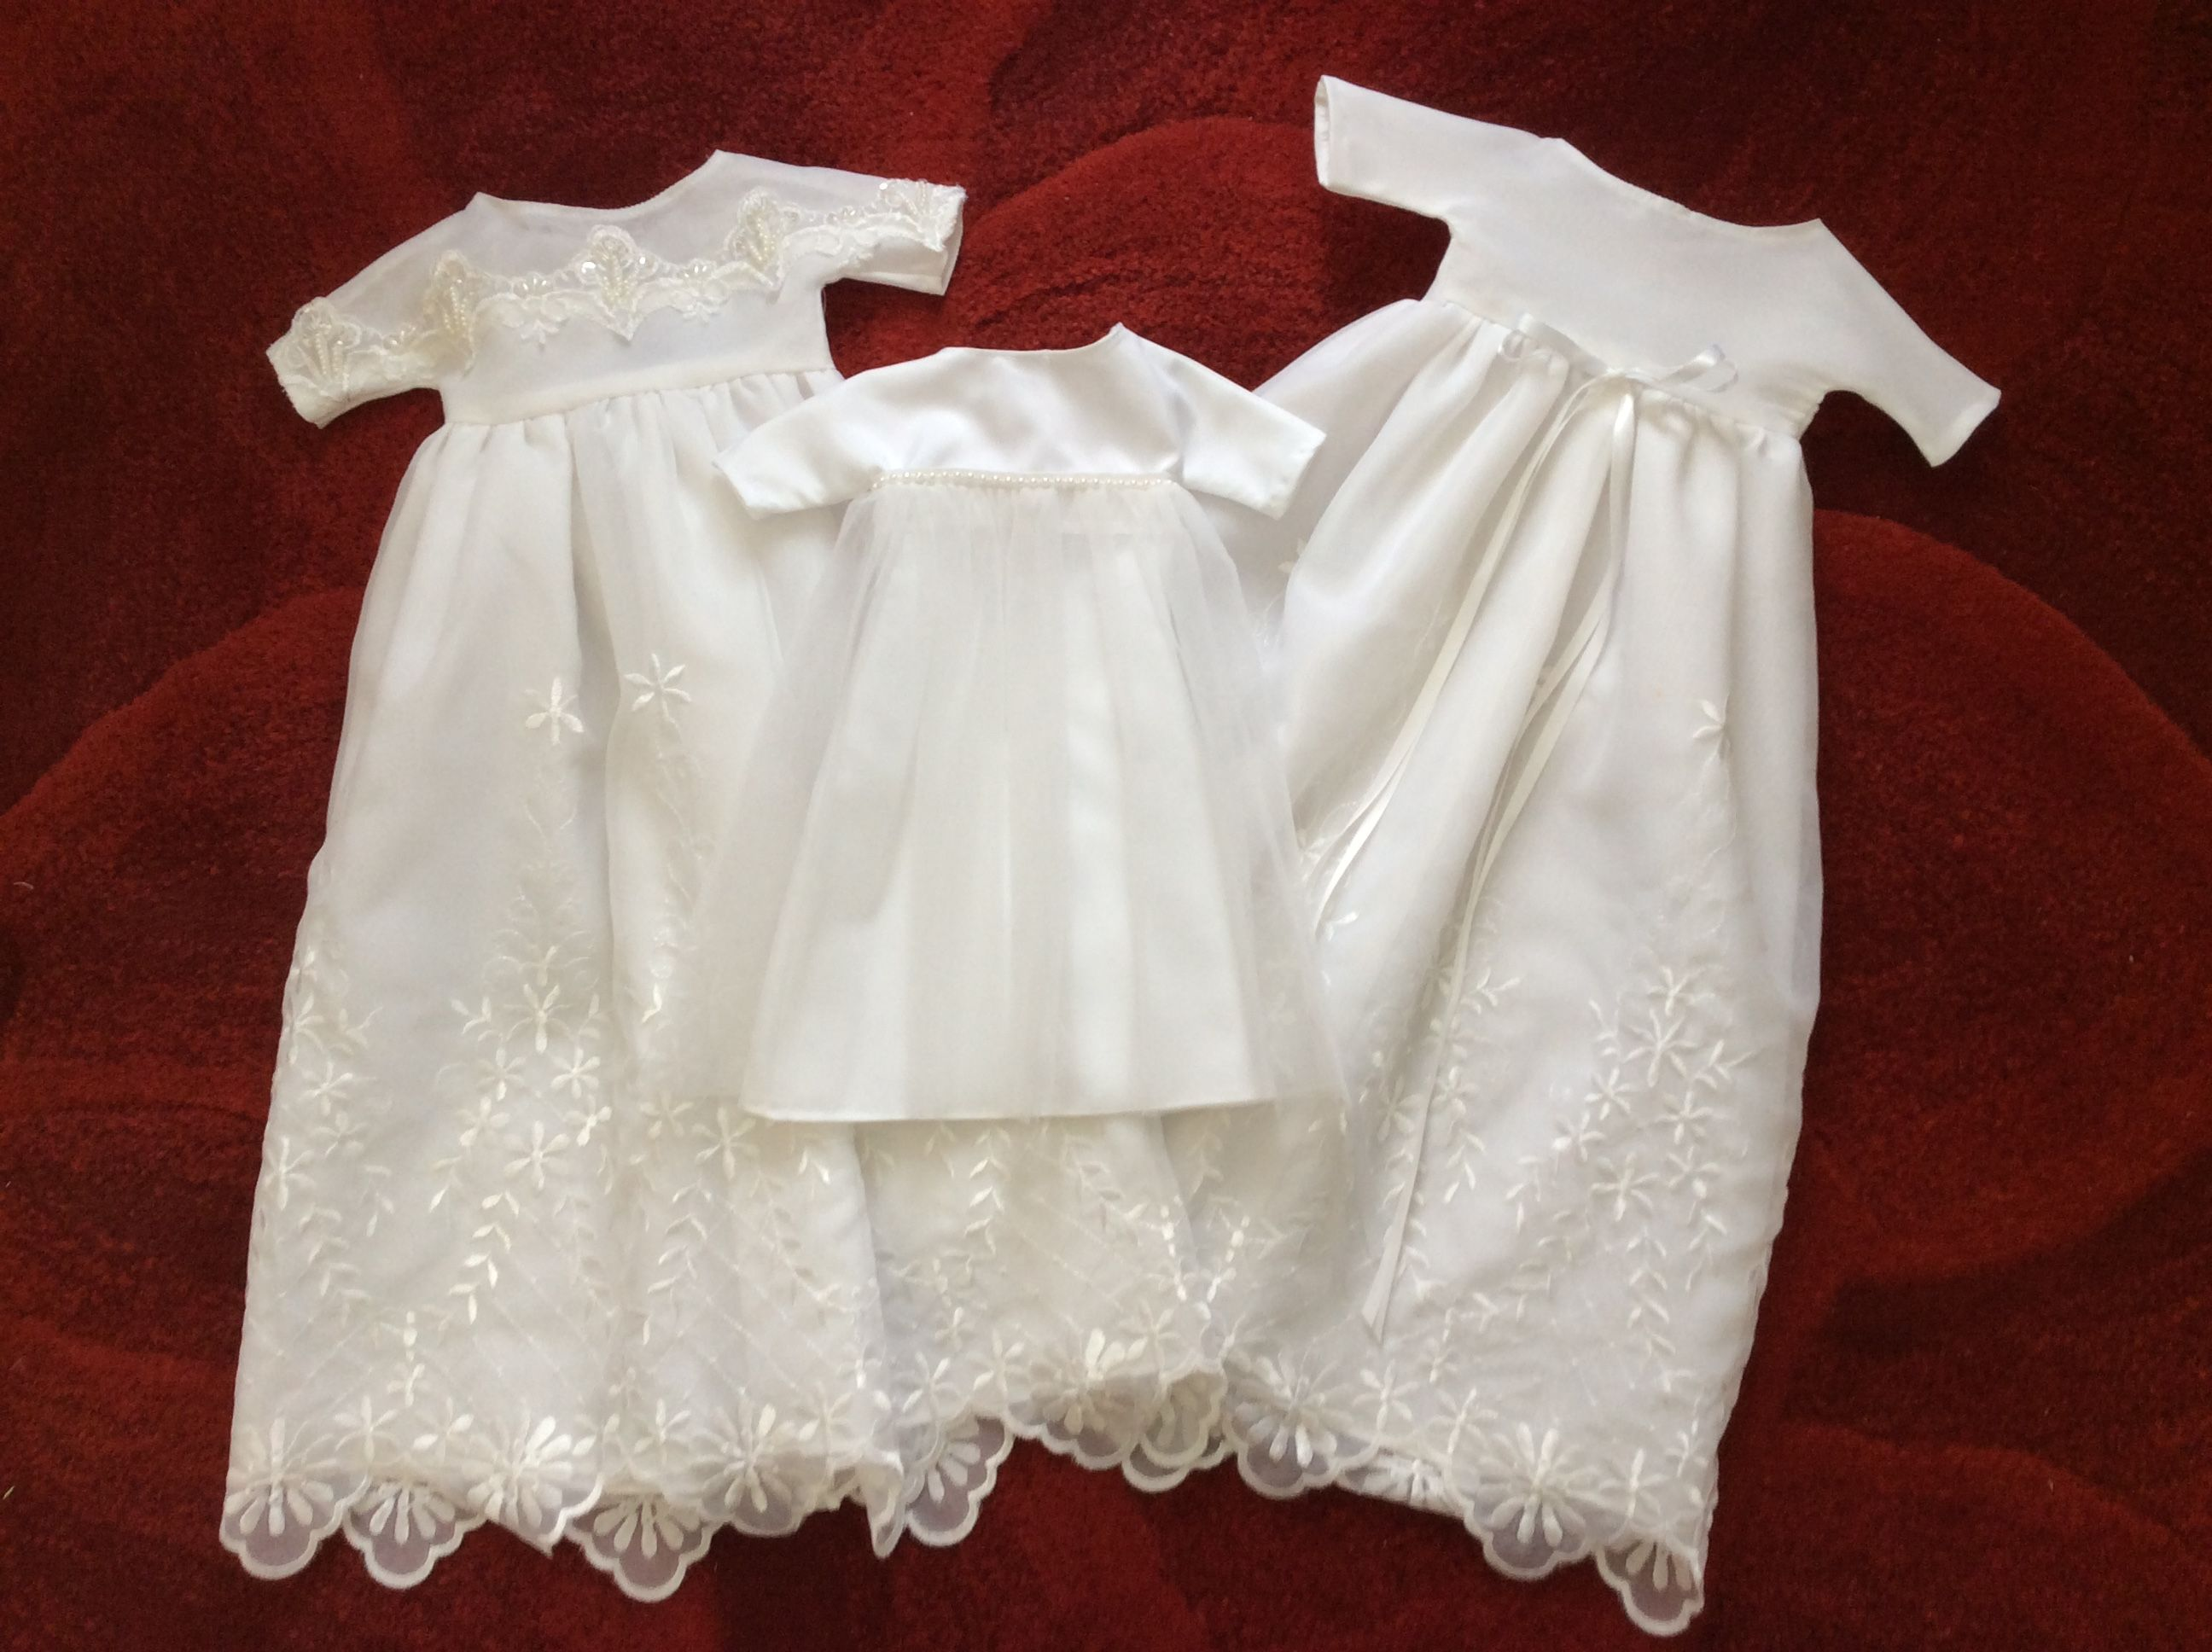 3 gowns made from a communion dress